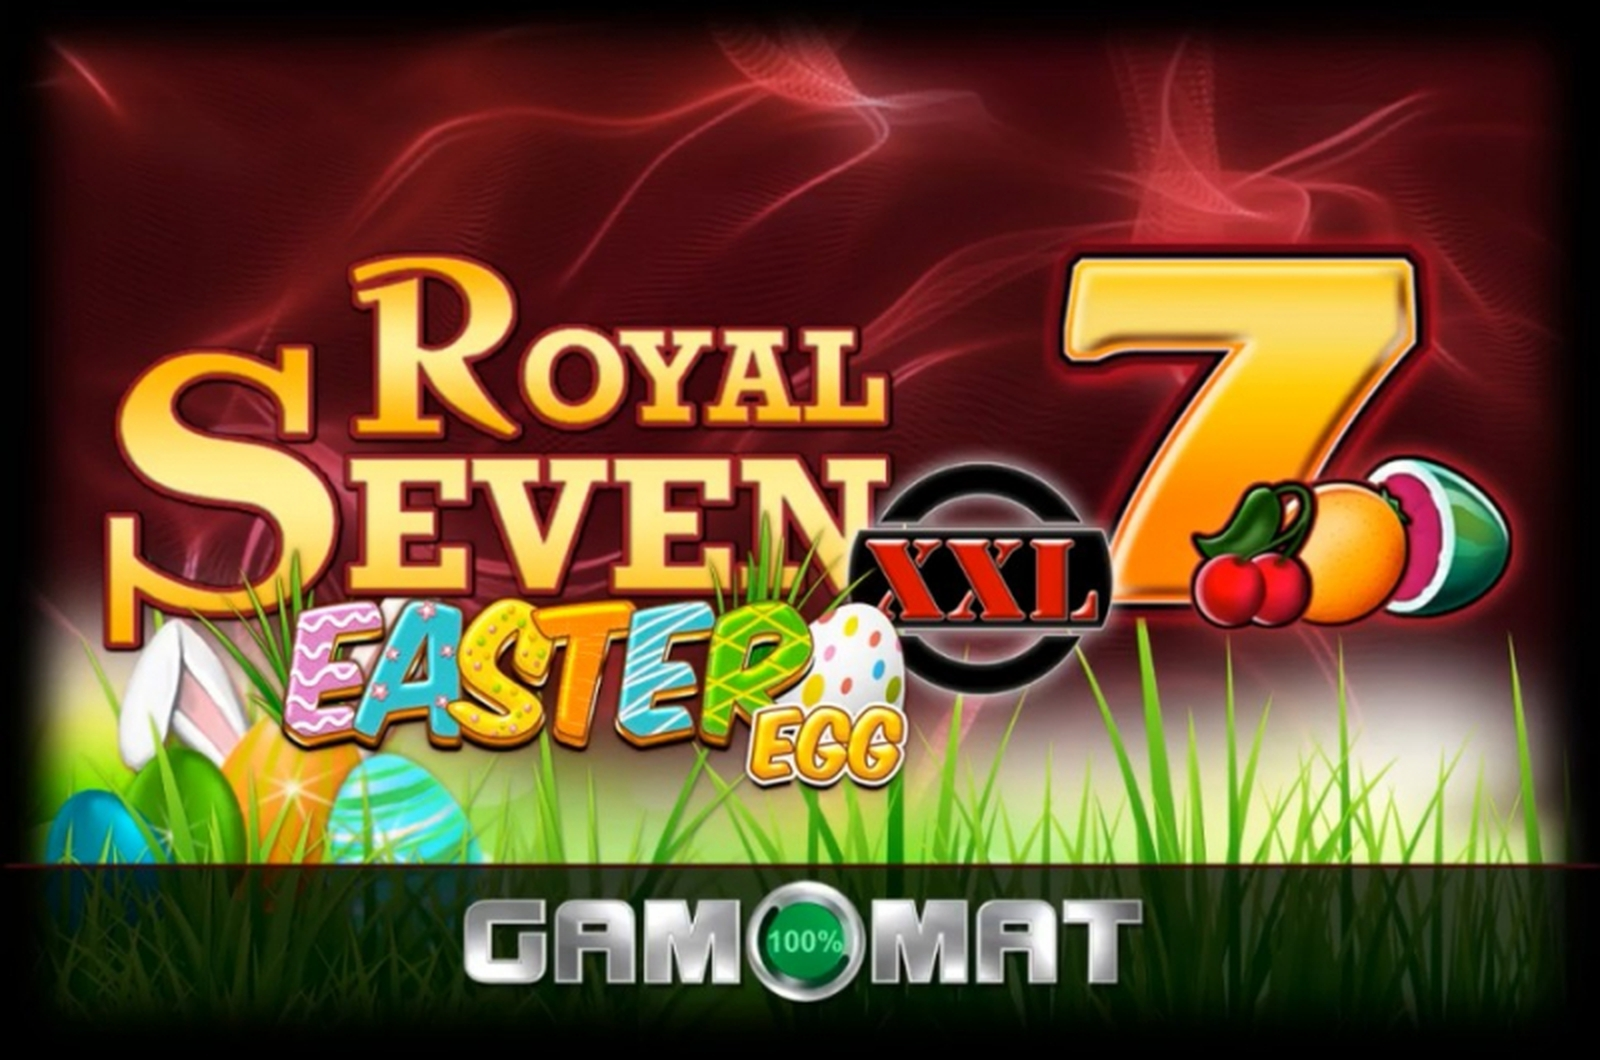 The Royal Seven XXL Online Slot Demo Game by Gamomat